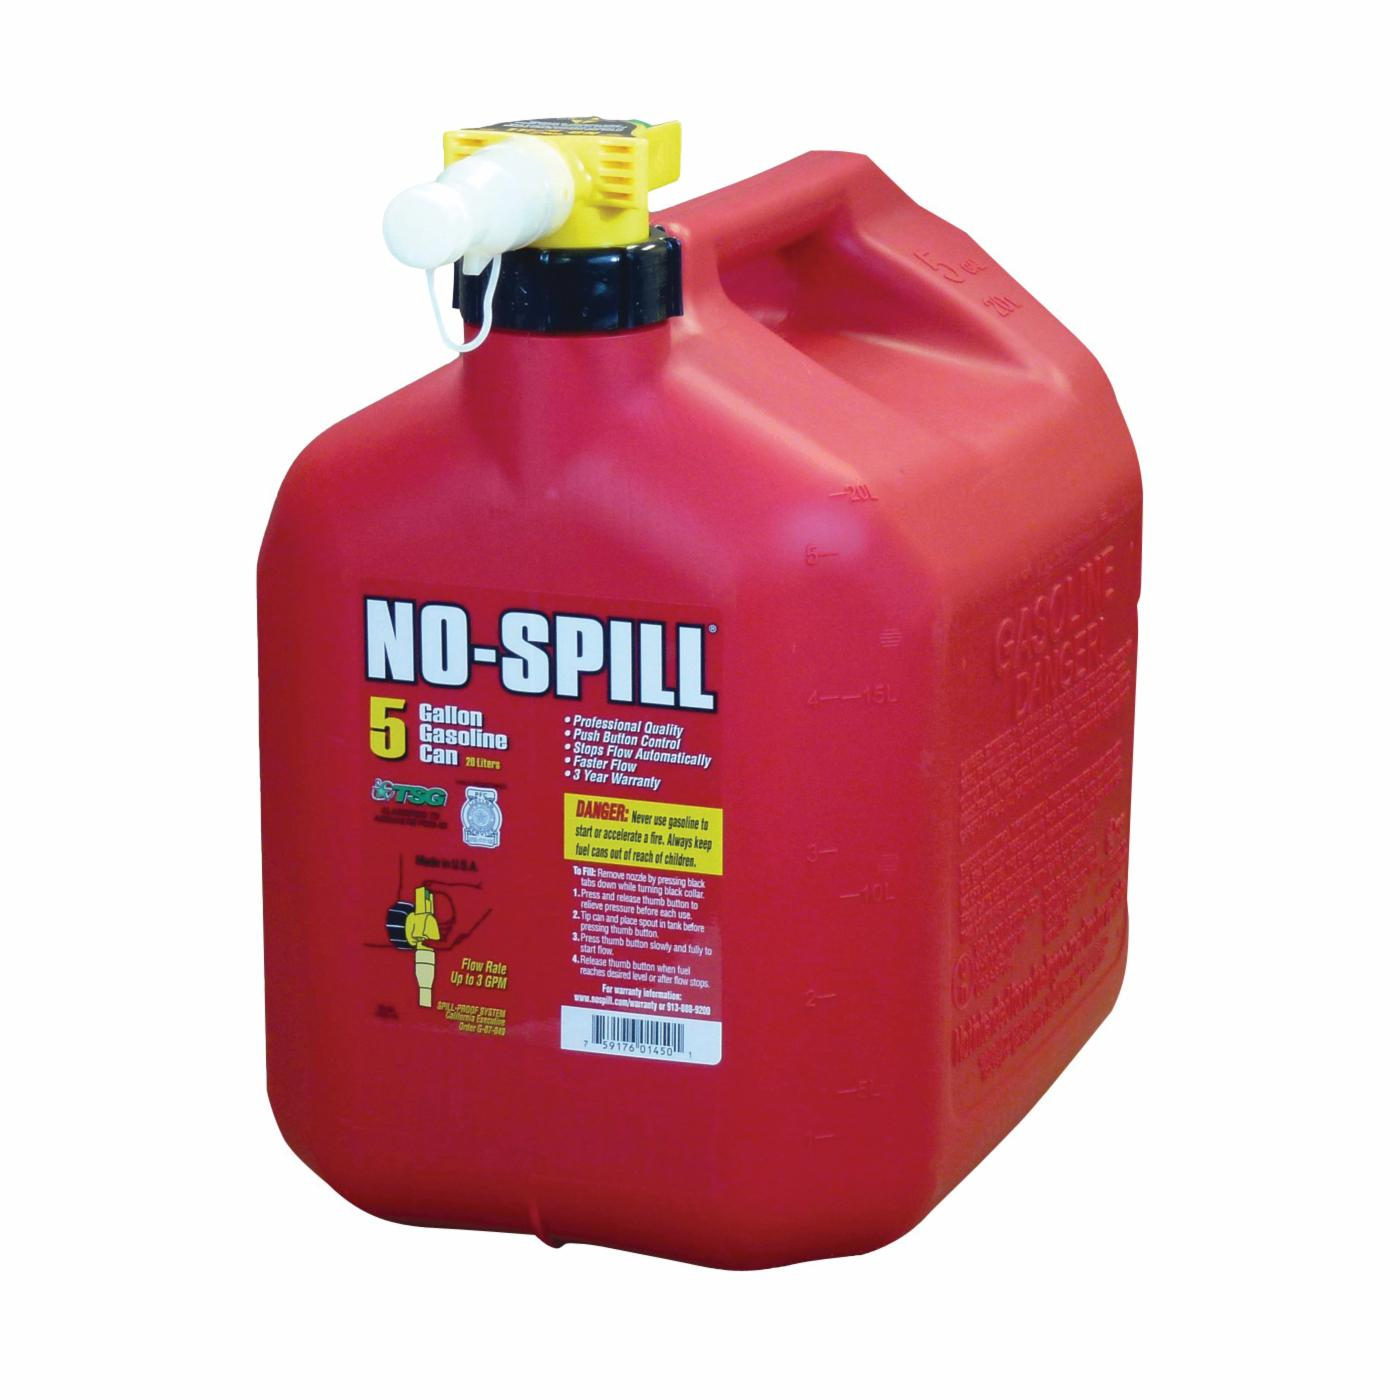 Picture of No-Spill 1450 Gas Can, 5 gal Capacity, Plastic, Red